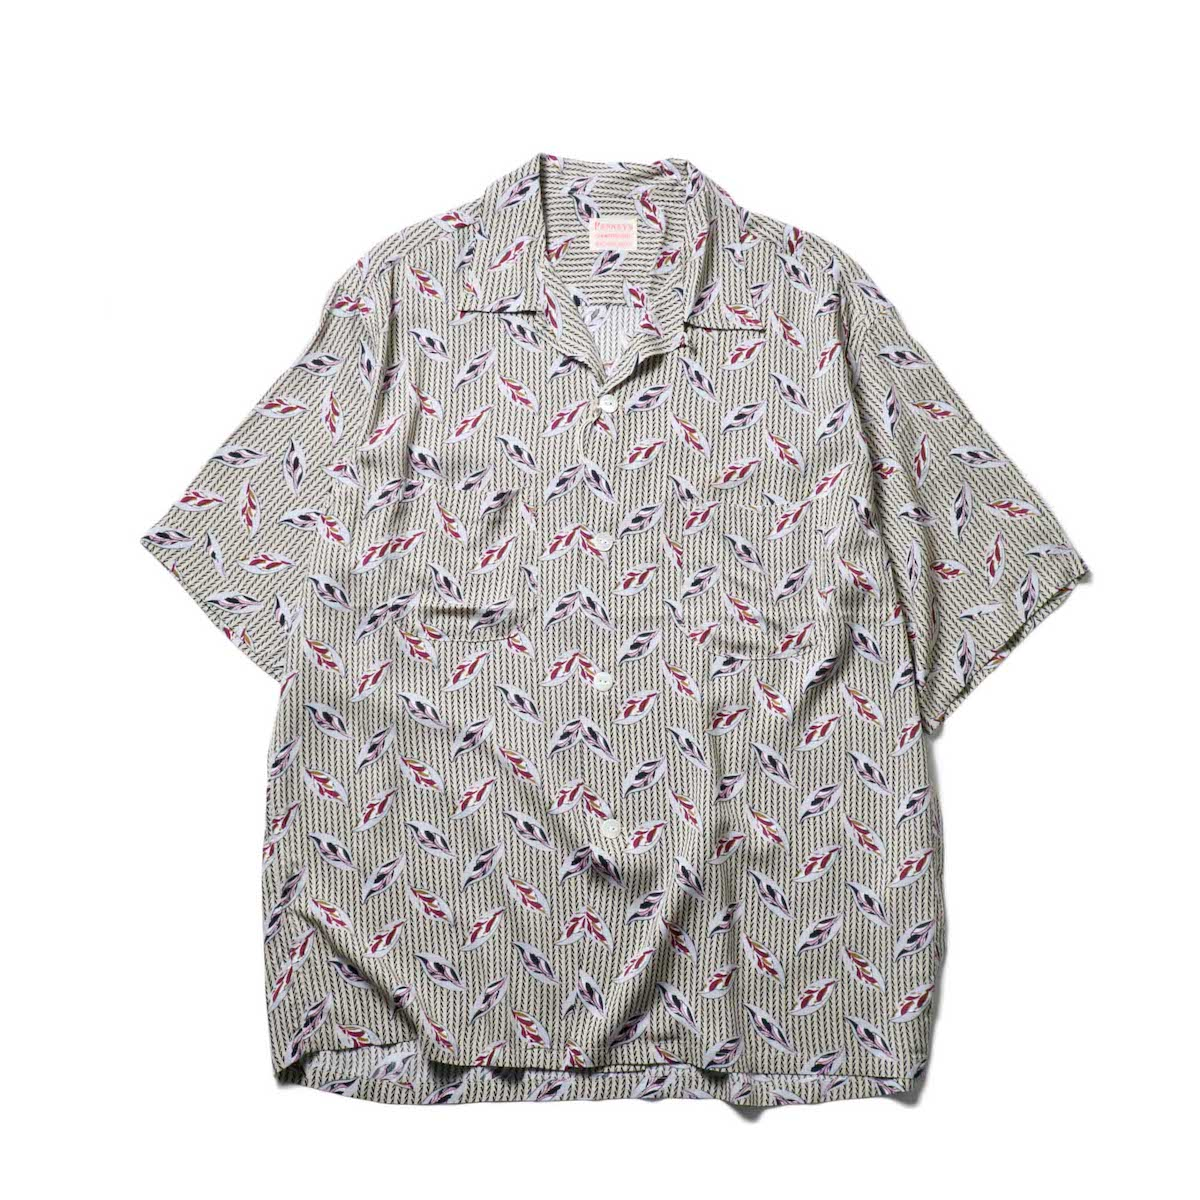 PENNEY'S / LEAF PRINTED W-P SS SHIRTS / (Beige)